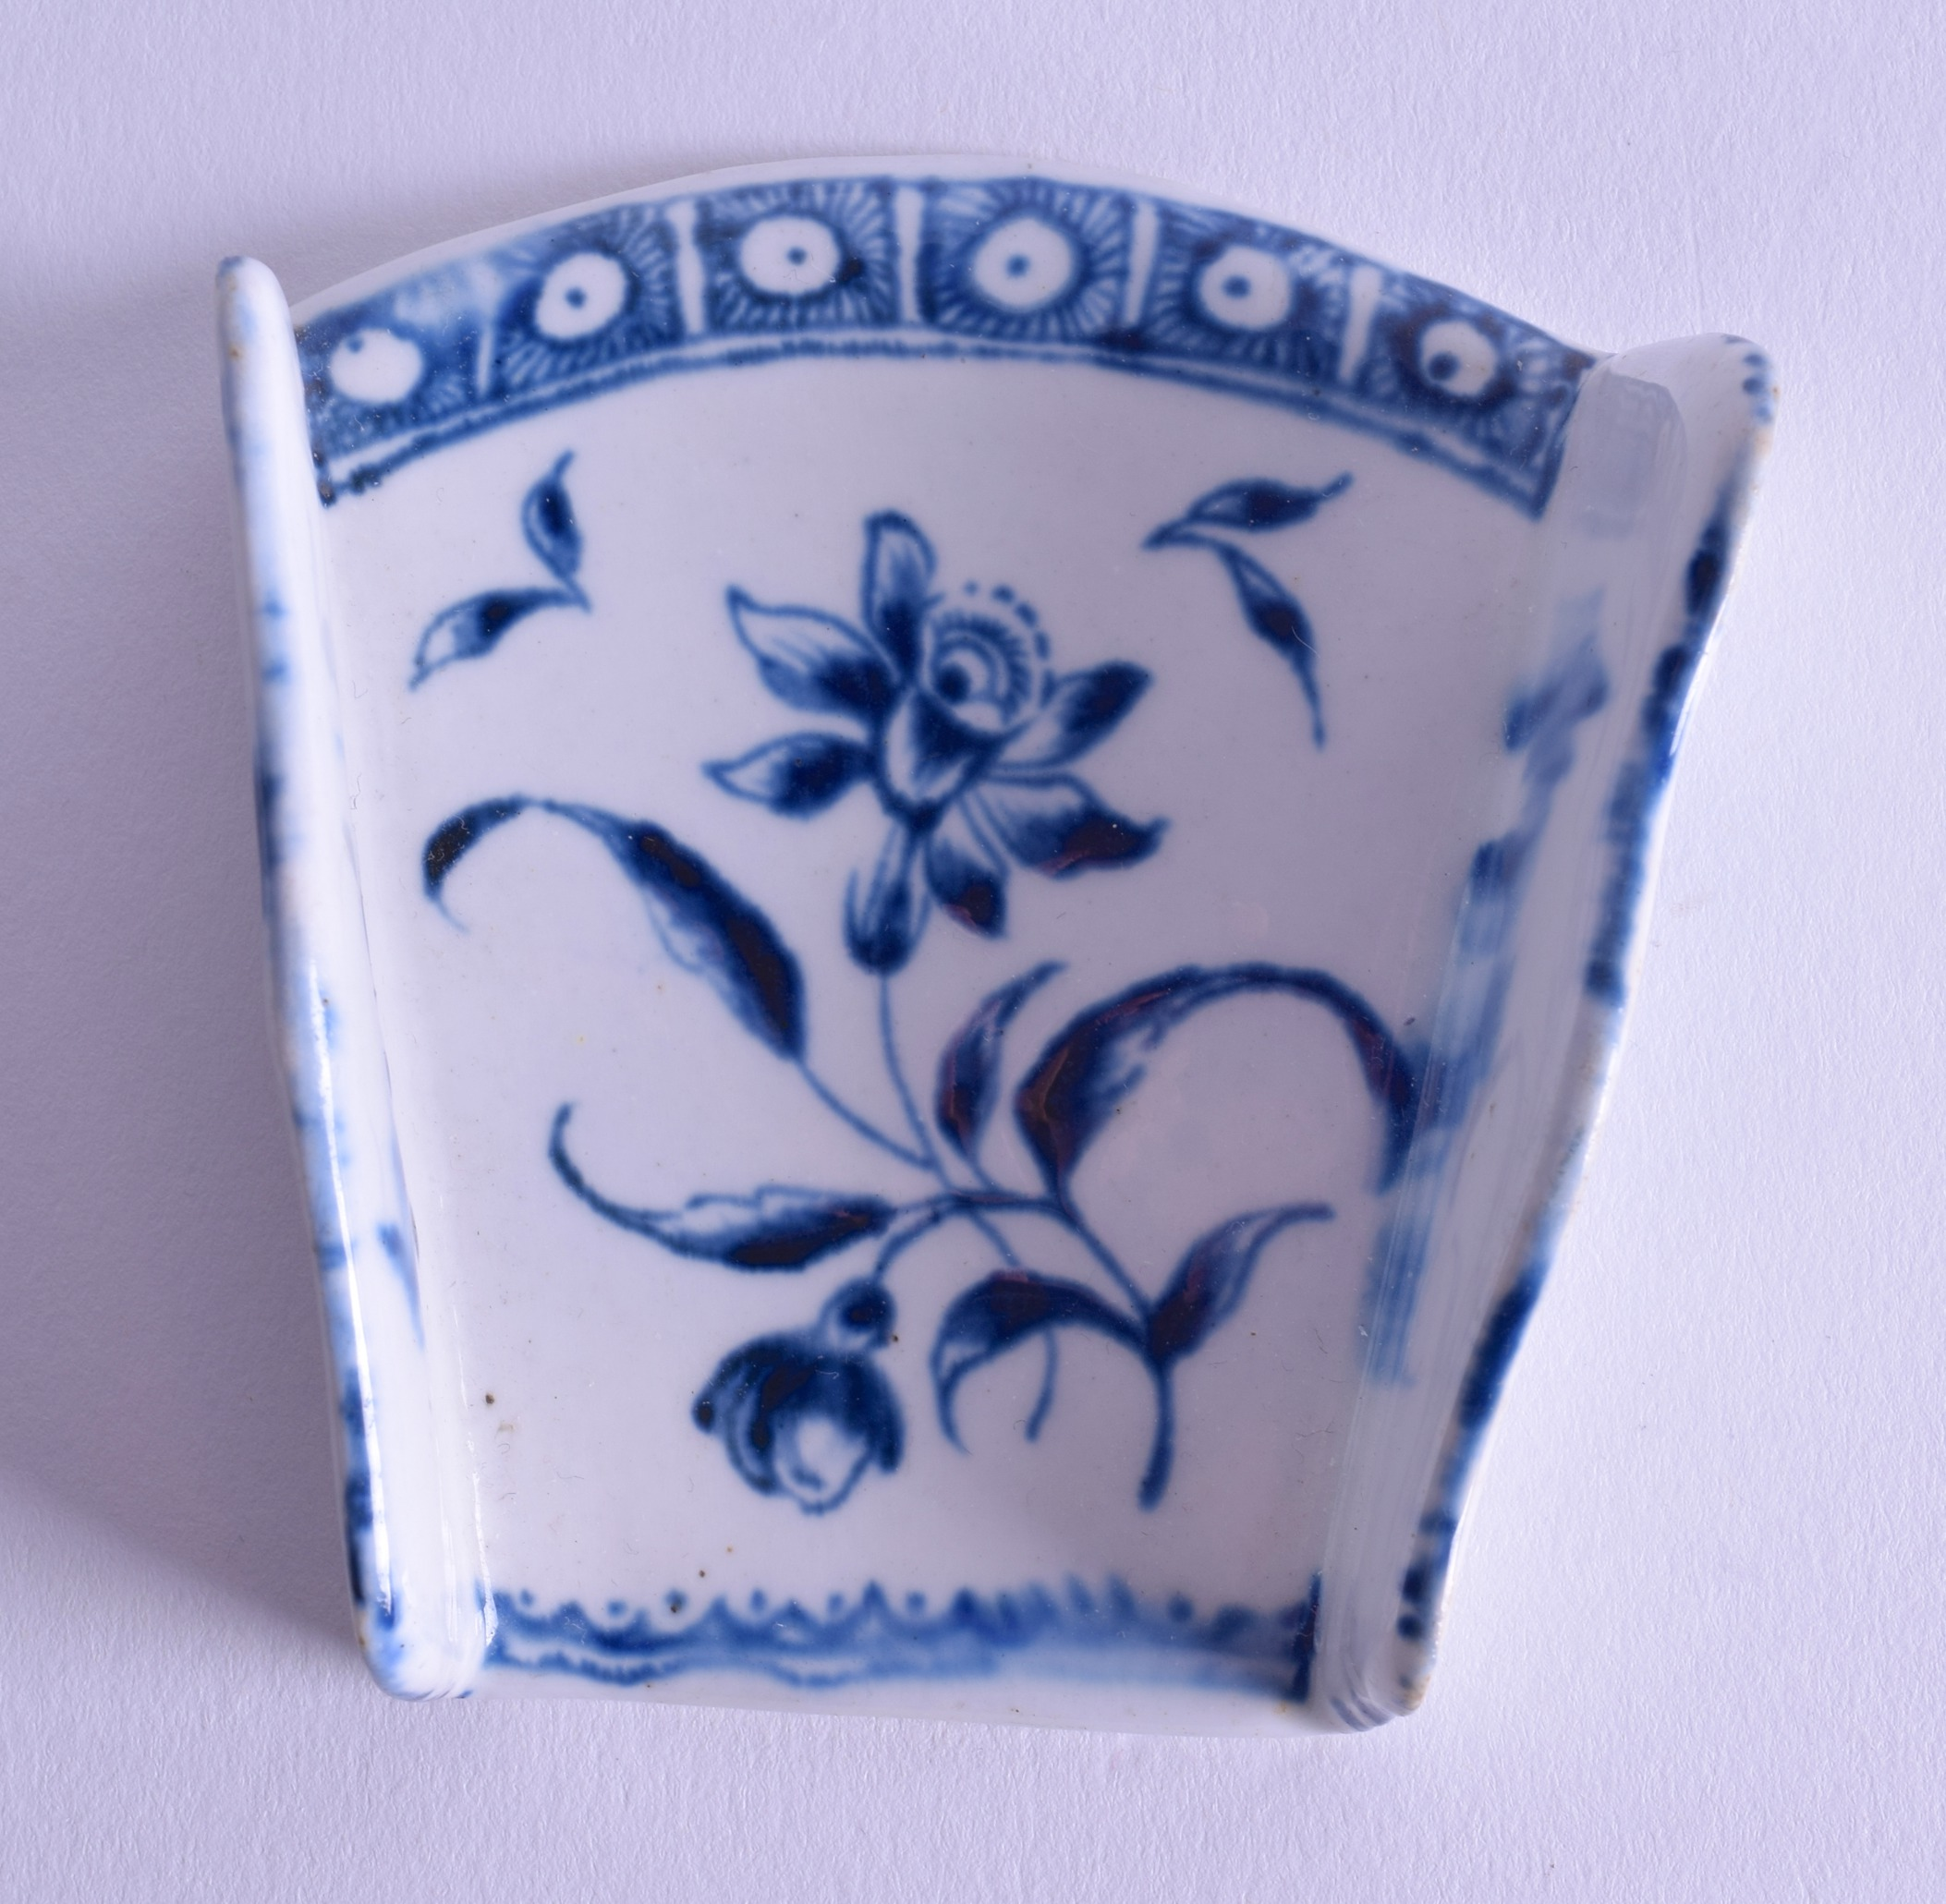 Lot 151 - 18th c. Derby asparagus server painted with a Narcissus under a cell border. 7.5cm tall